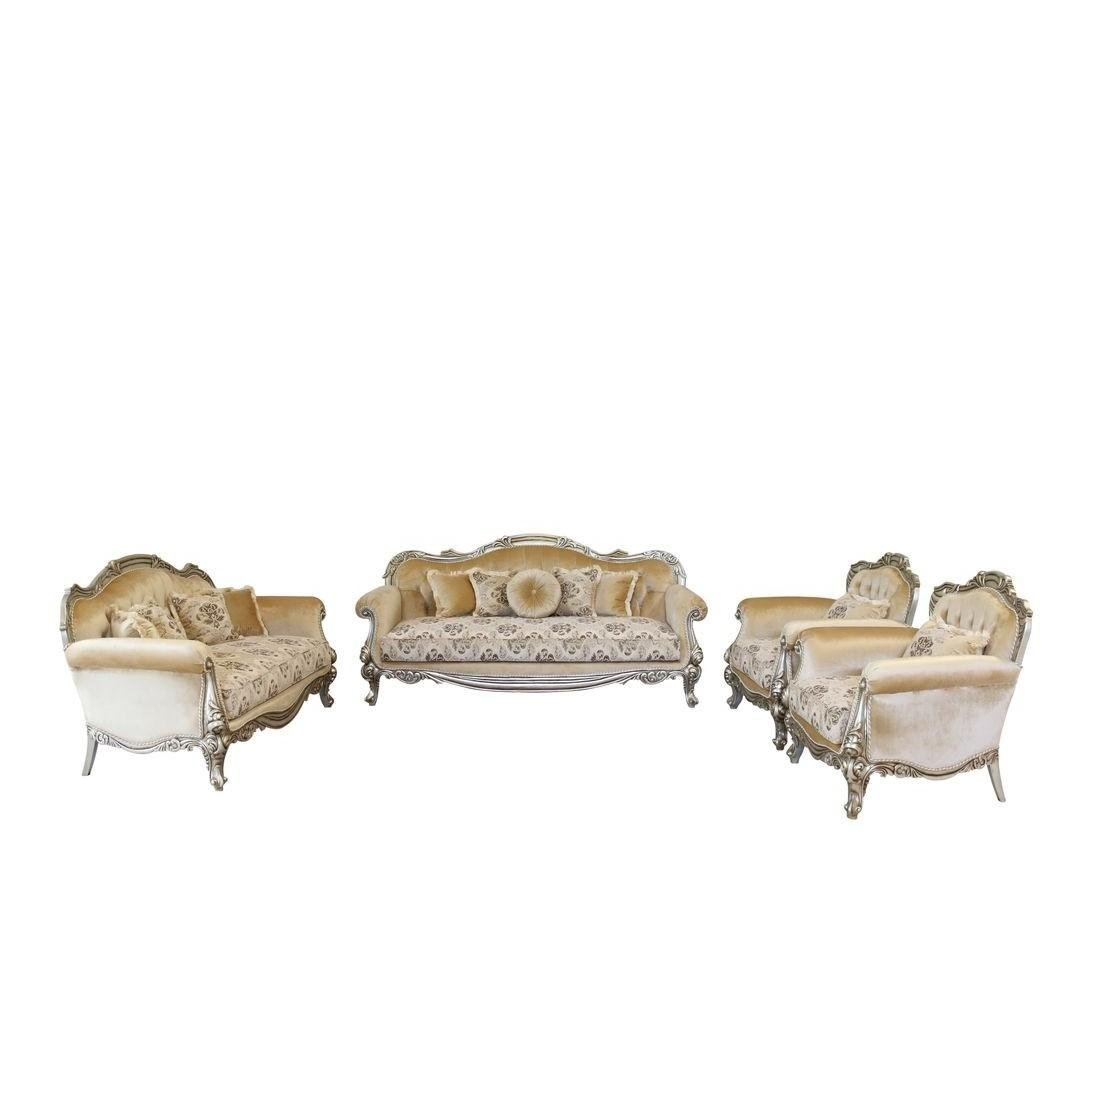 Classic  Traditional Silver  Antique Wood  Solid Hardwood and Fabric Sofa Set EUROPEAN FURNITURE 37055-S-Set-4